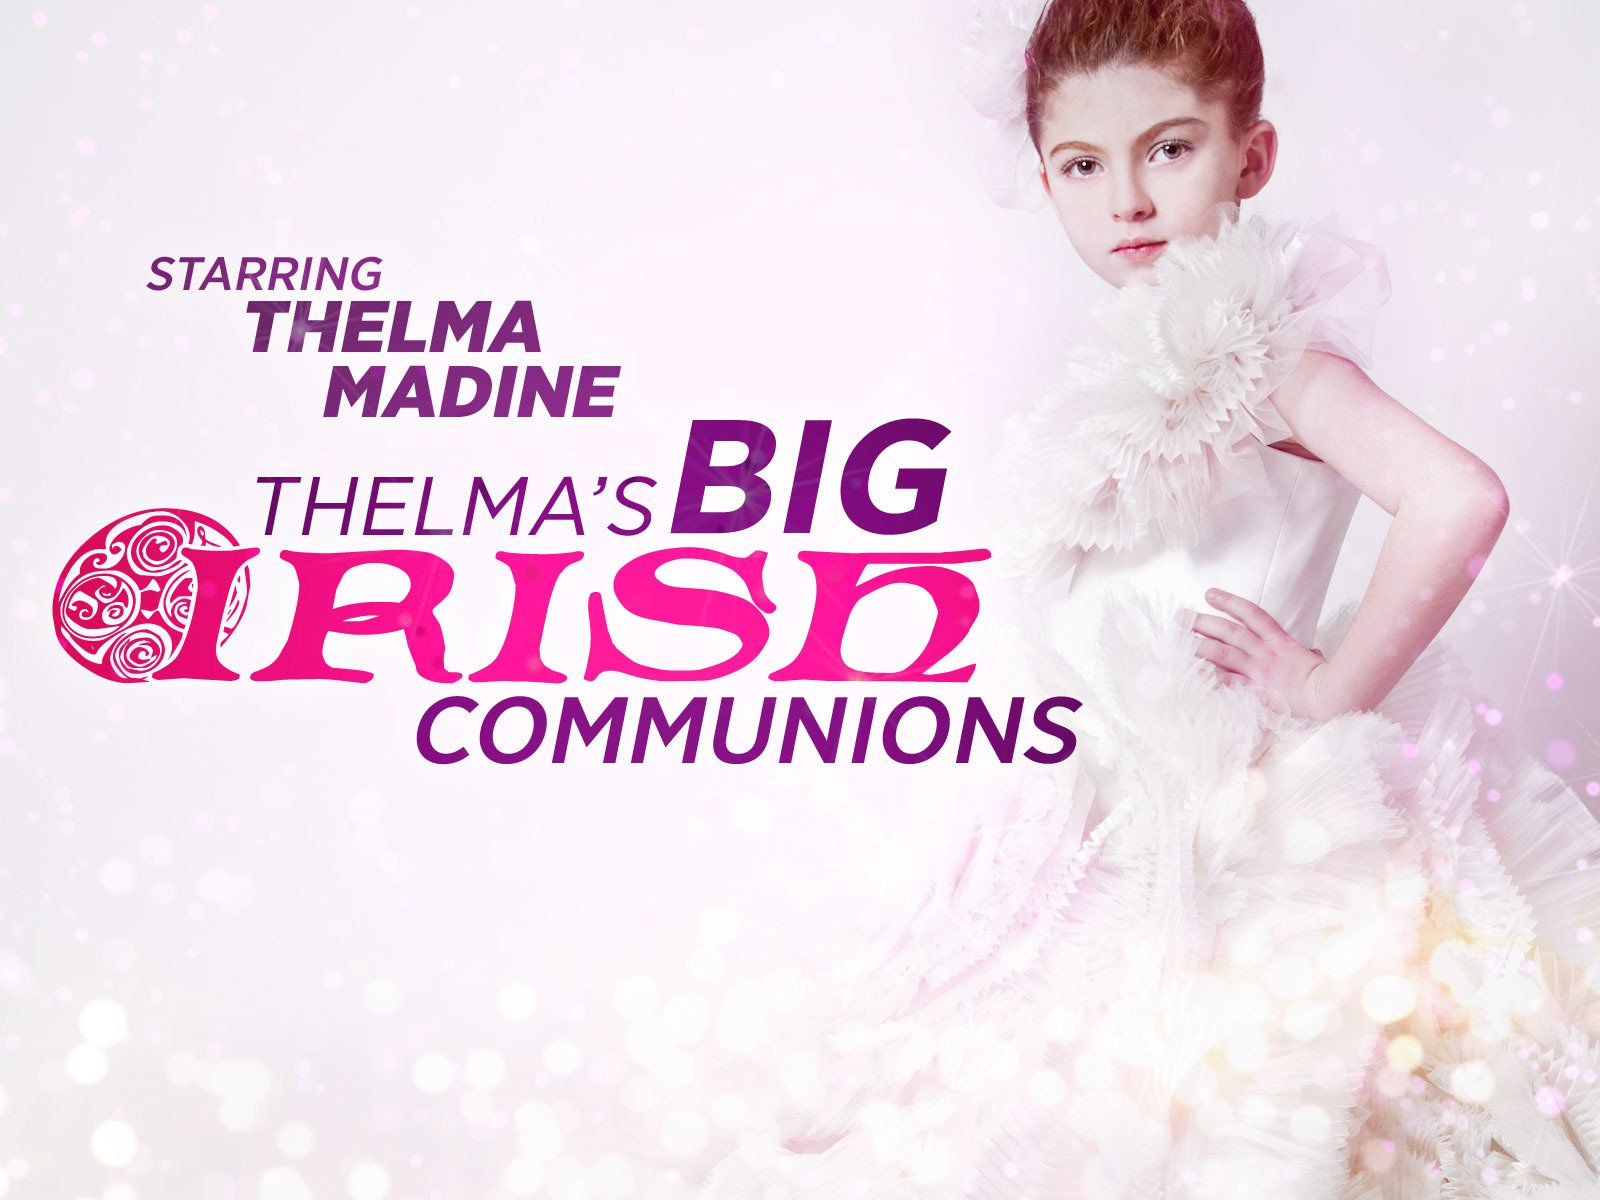 Amazon.com: Thelma\'s Big Irish Communions: Thelma Madine, Banijay